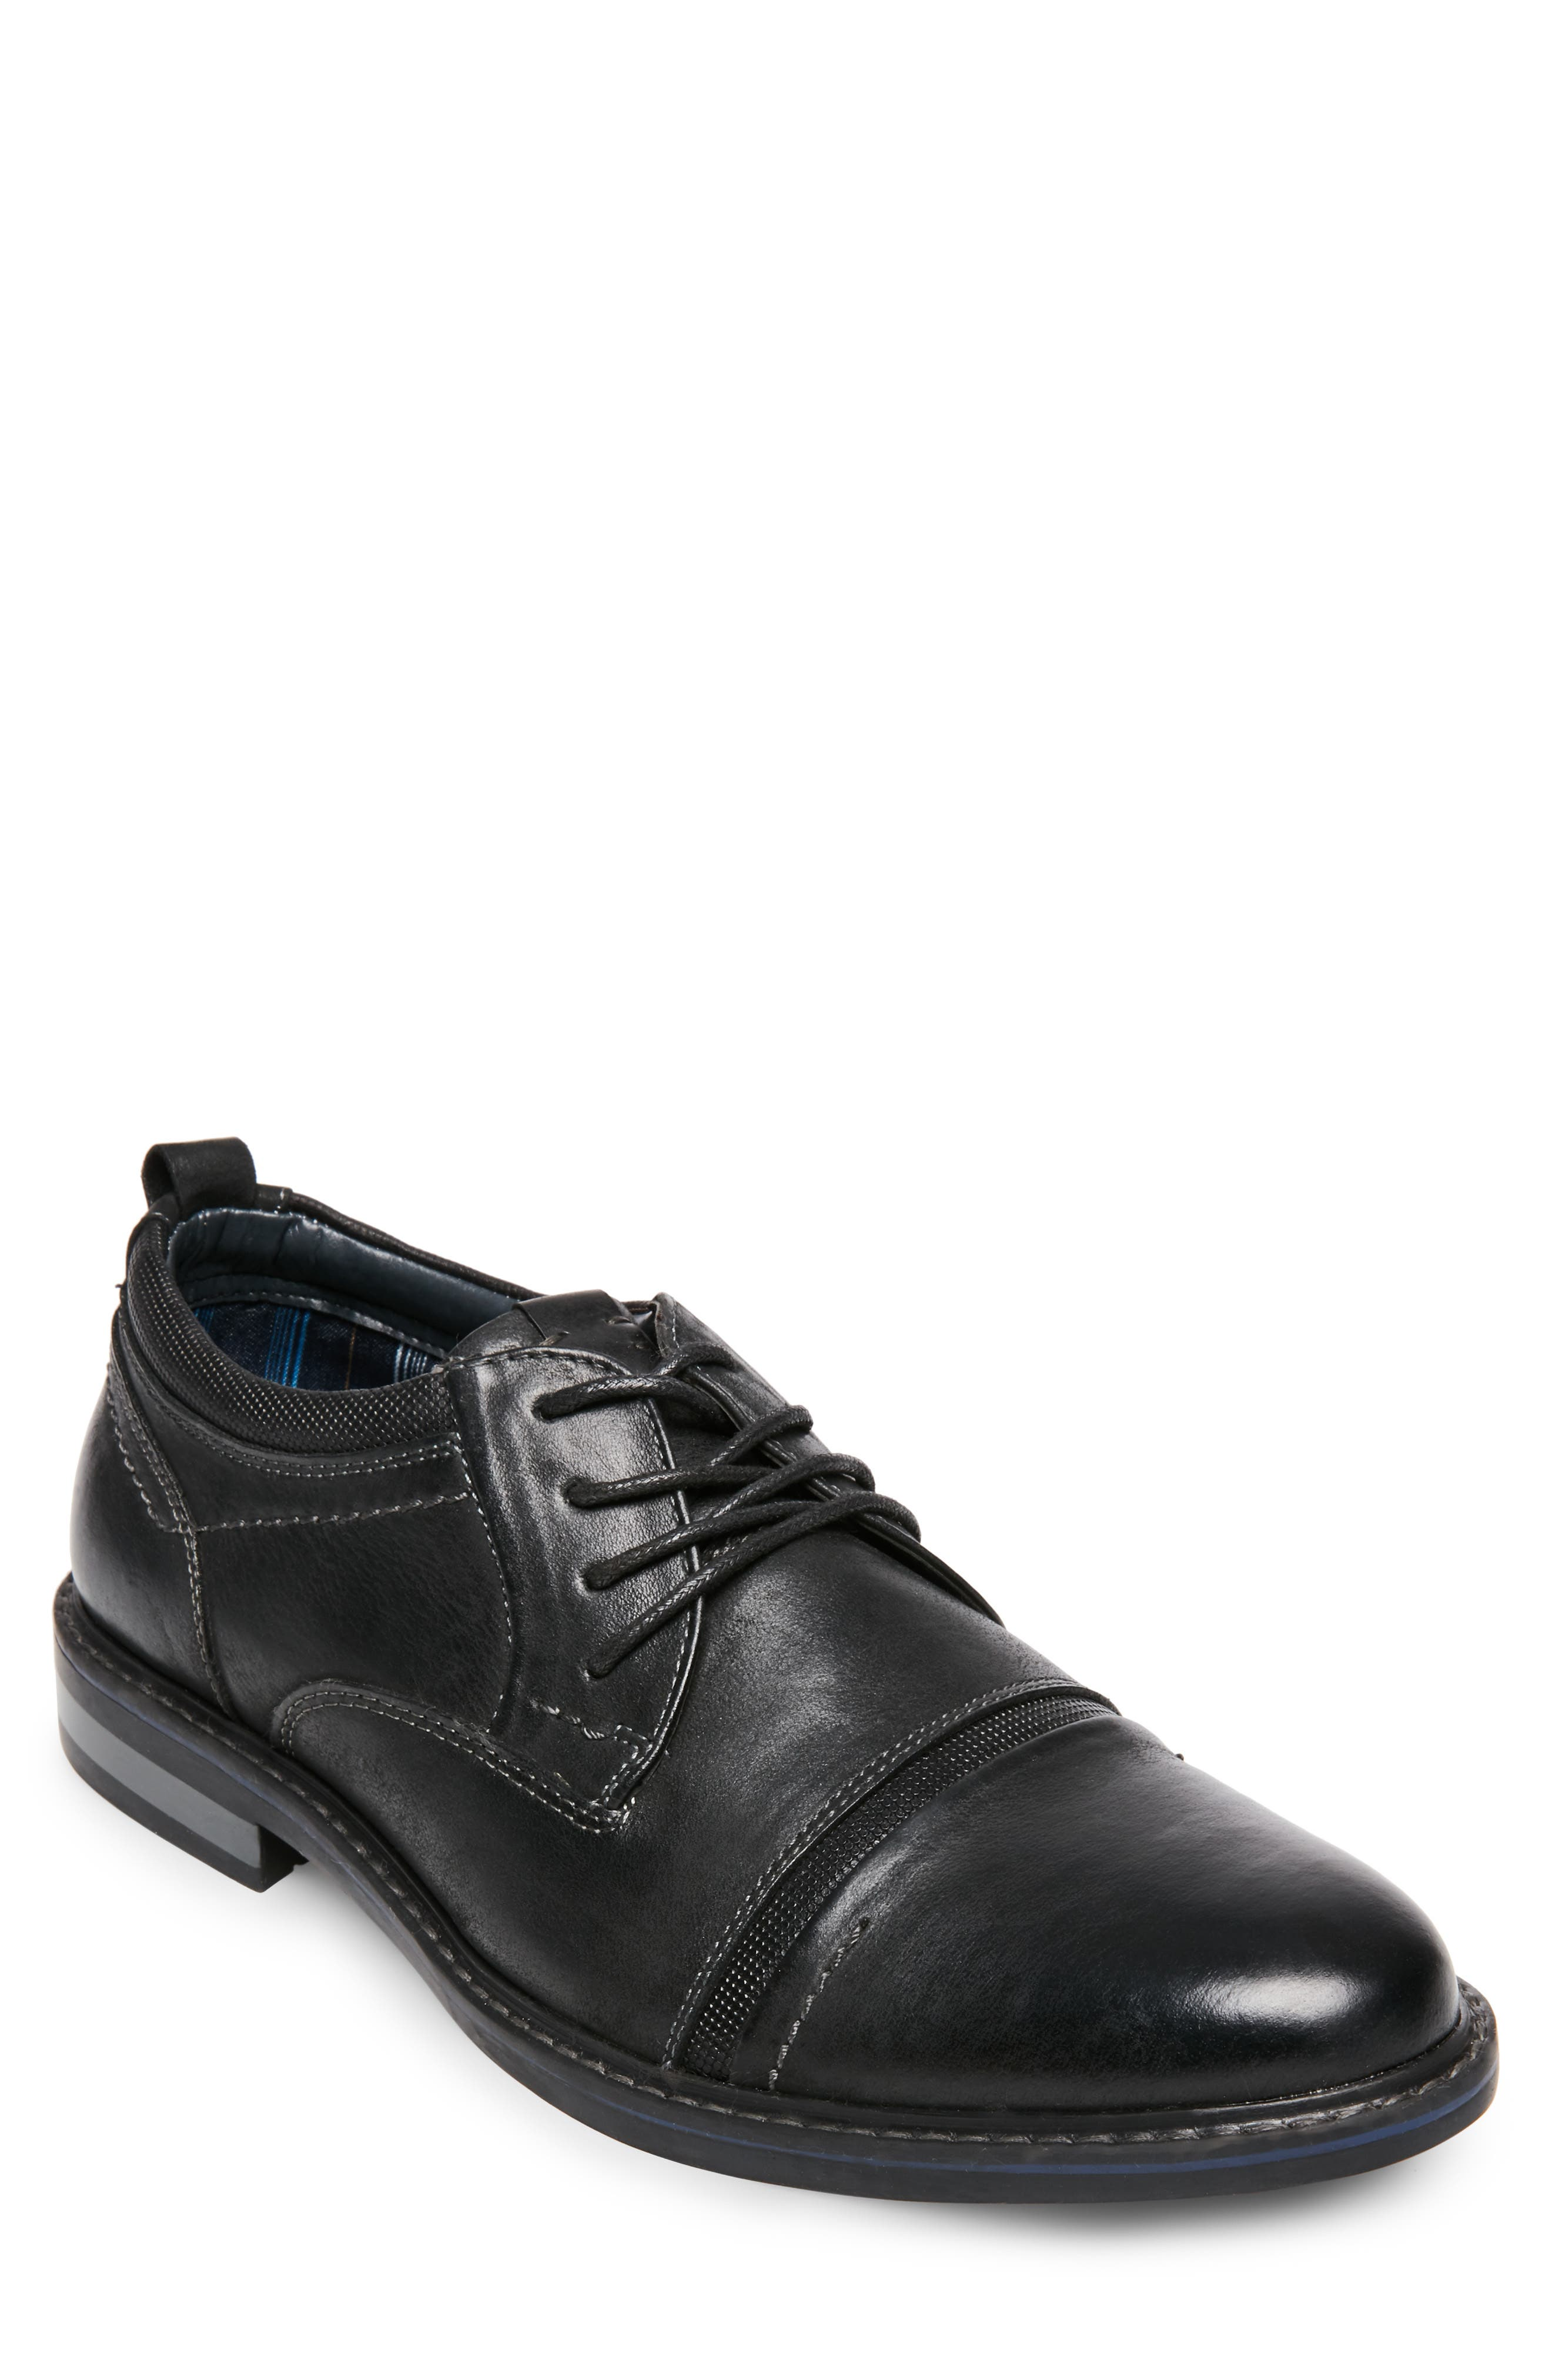 O'Leary Cap Toe Derby,                         Main,                         color, BLACK LEATHER